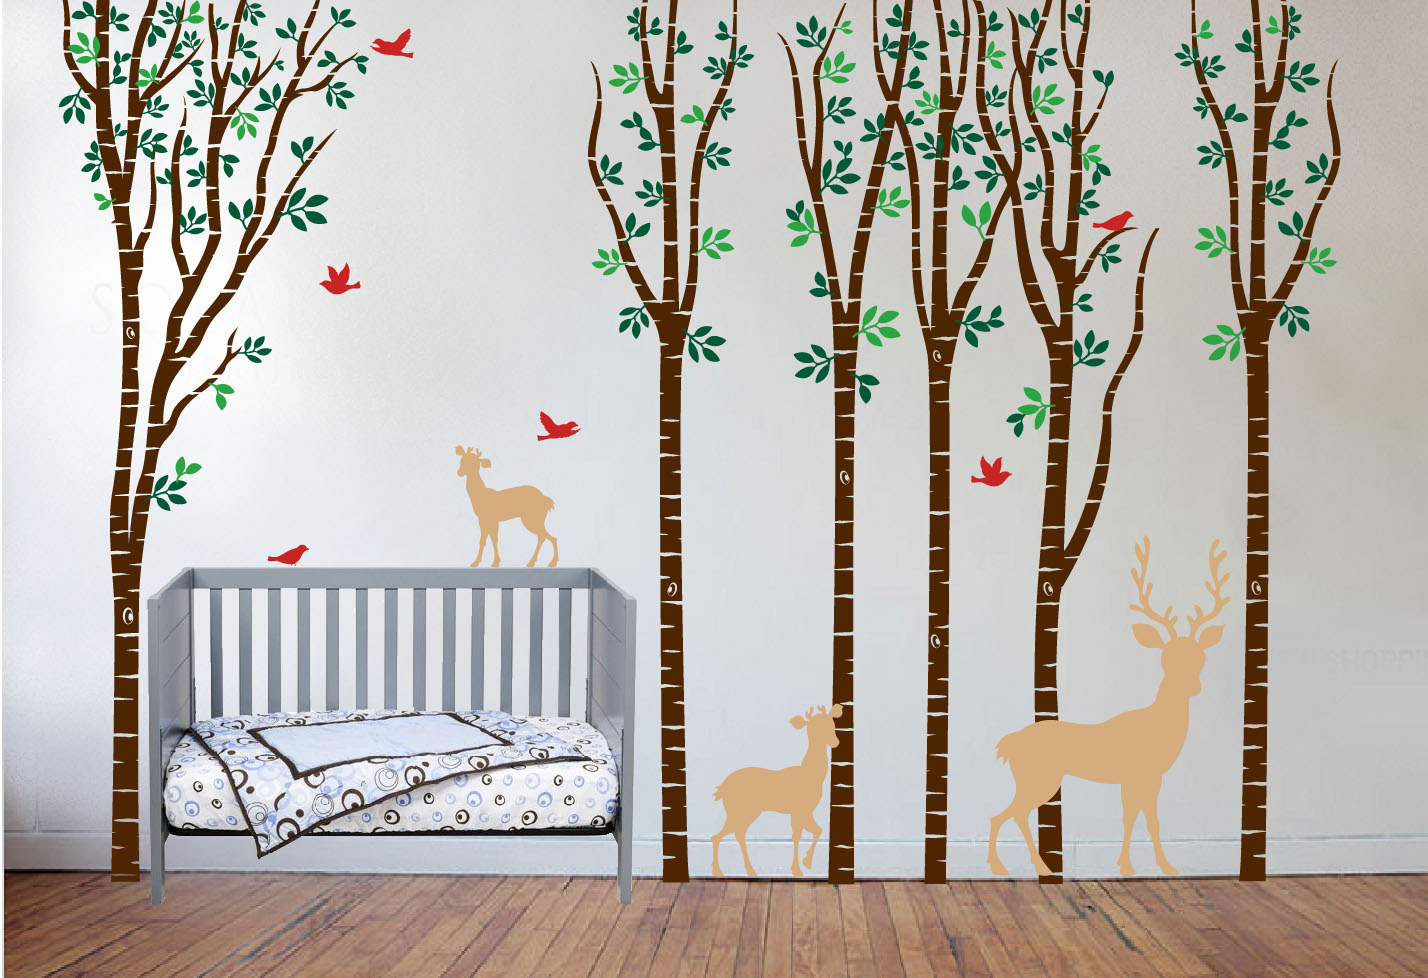 birch-tree-nursery-deer-set-birds-brown-crib.jpg